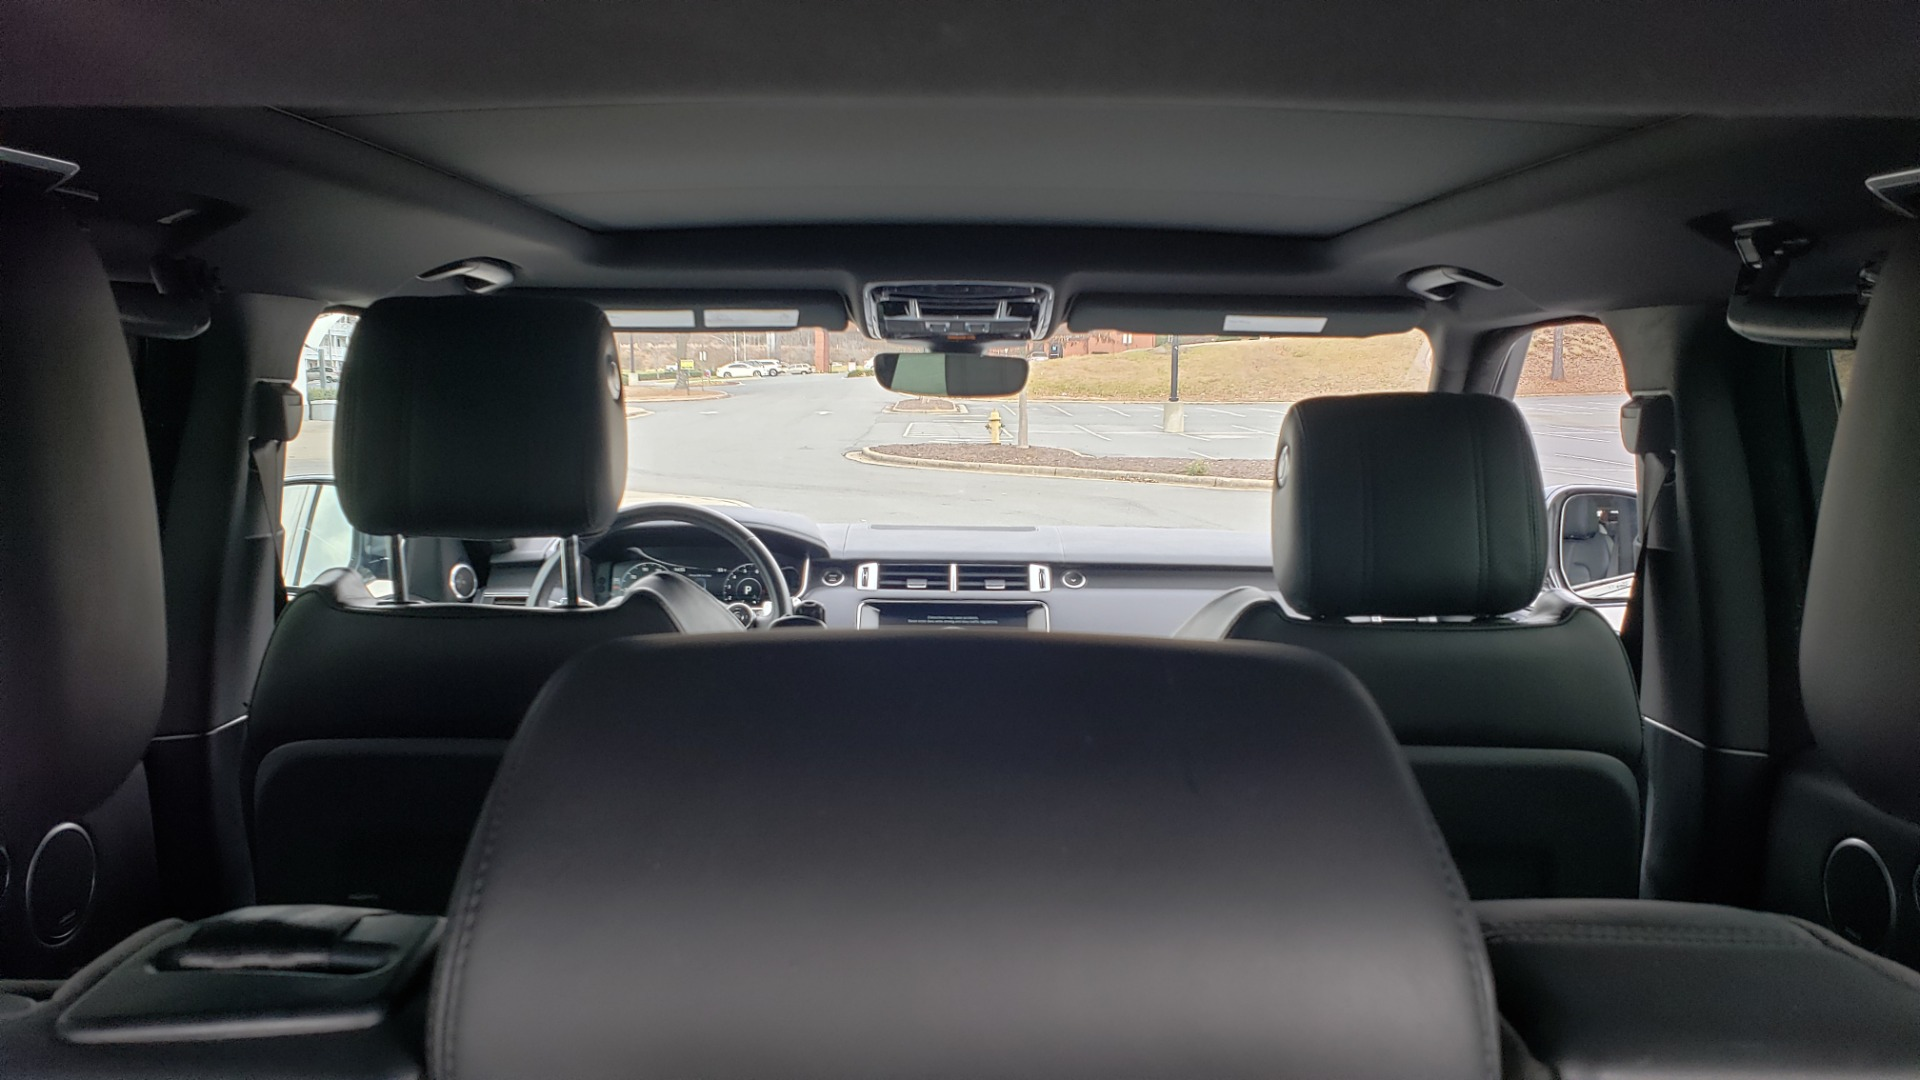 Used 2017 Land Rover RANGE ROVER SPORT HSE DYNAMIC / SC V6 / NAV / MERIDIAN / PANO-ROOF / REARVIEW for sale Sold at Formula Imports in Charlotte NC 28227 19